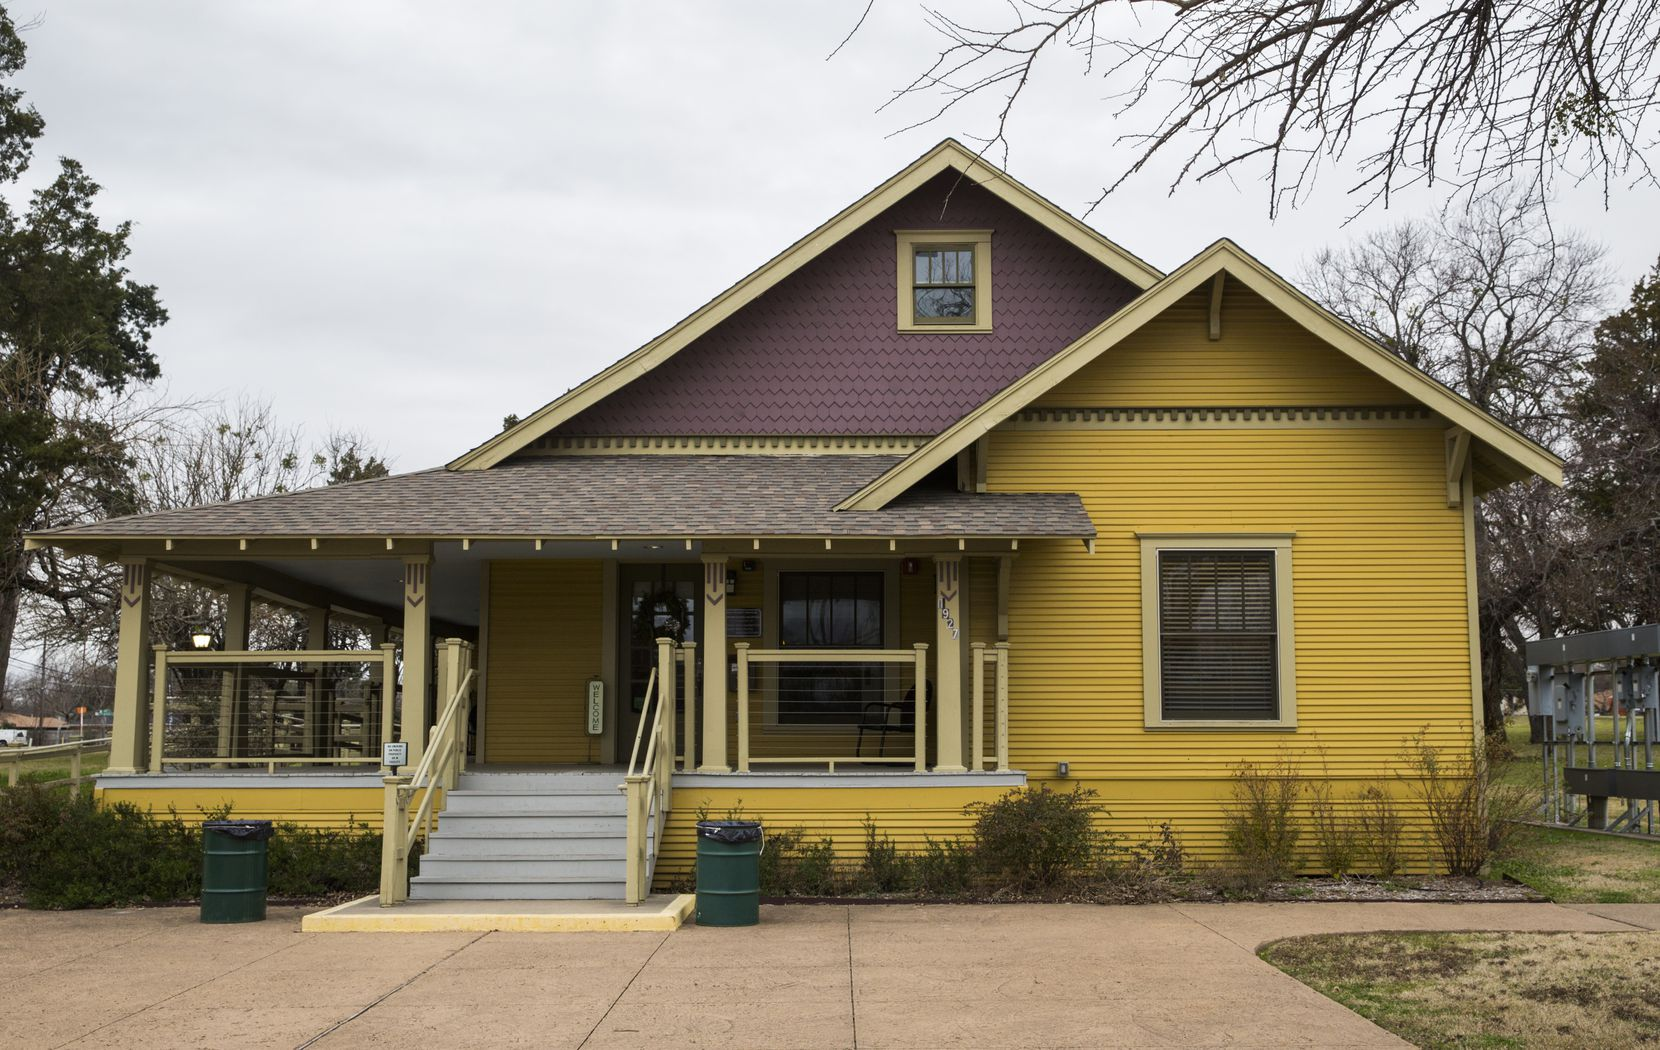 The Noah Range Farmhouse, a turn-of-the-century arts-and-crafts bungalow, is one of about a half dozen historic buildings at Opal Lawrence Historical Park.